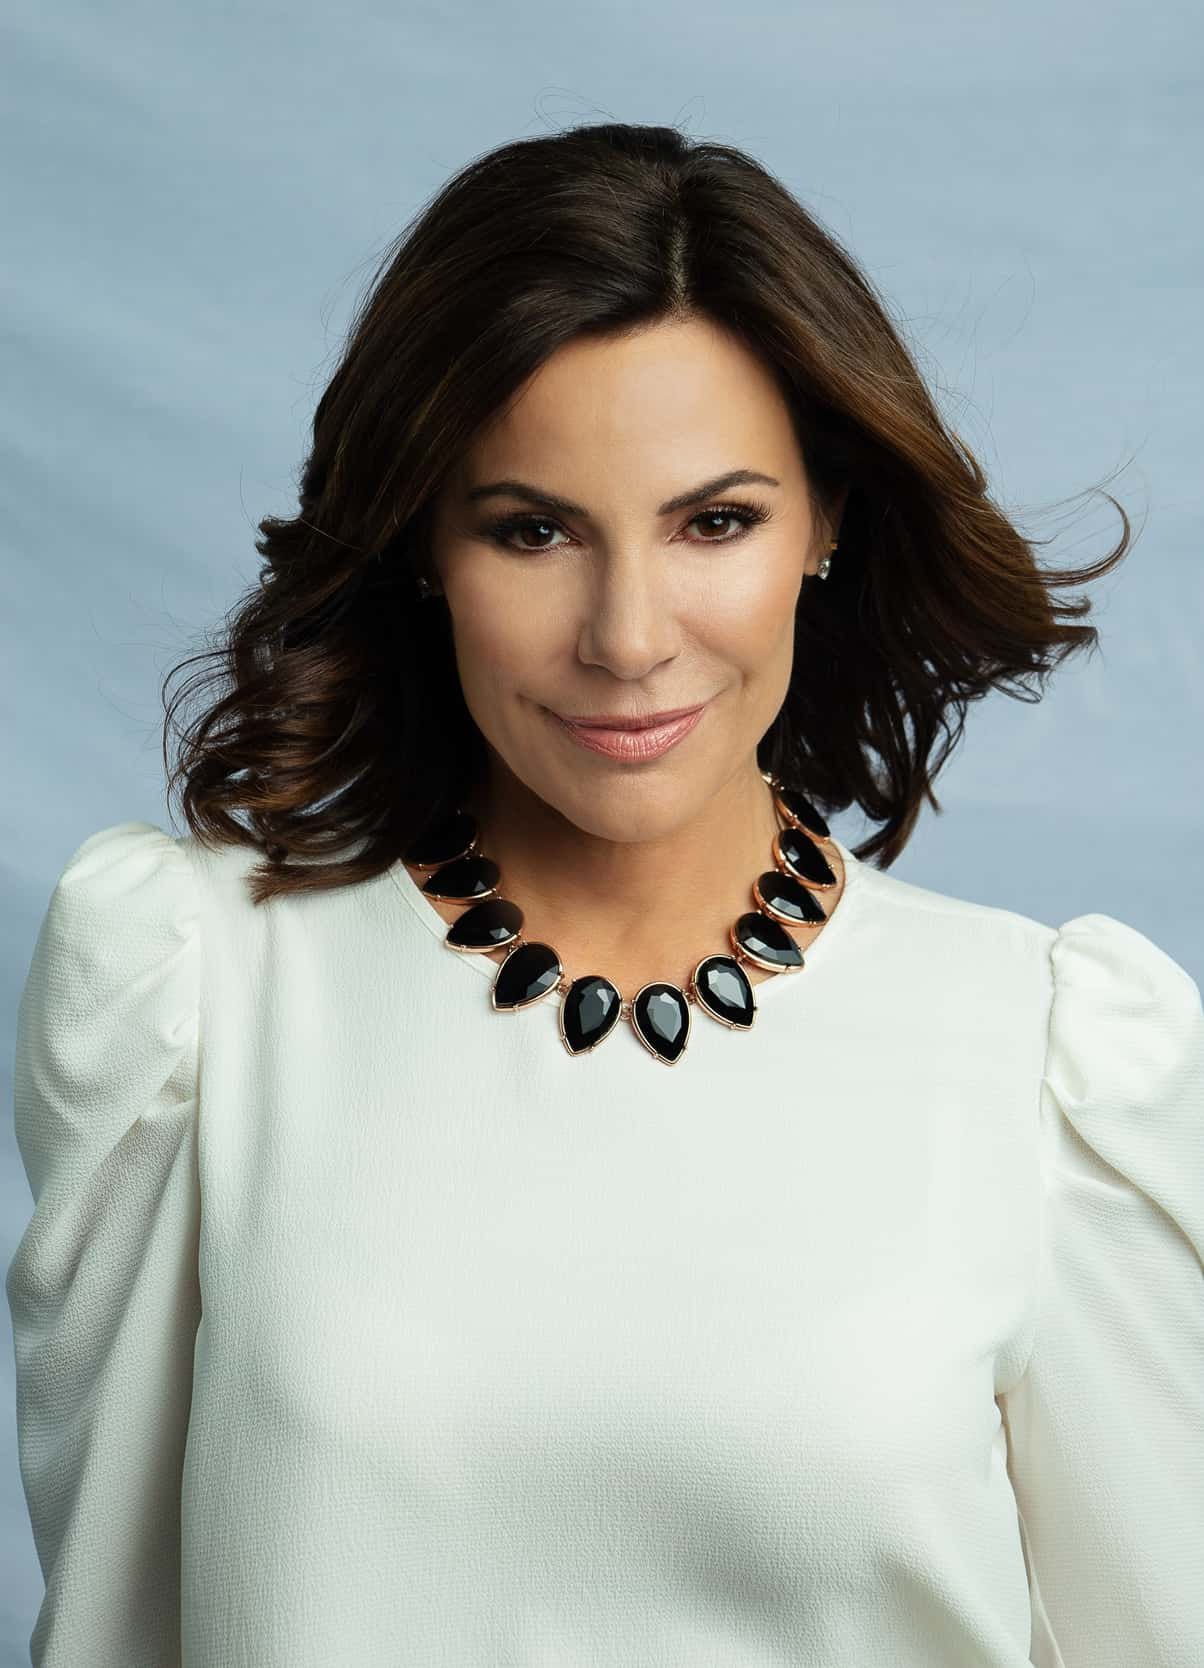 Luann de Lesseps SuperJeweler necklace